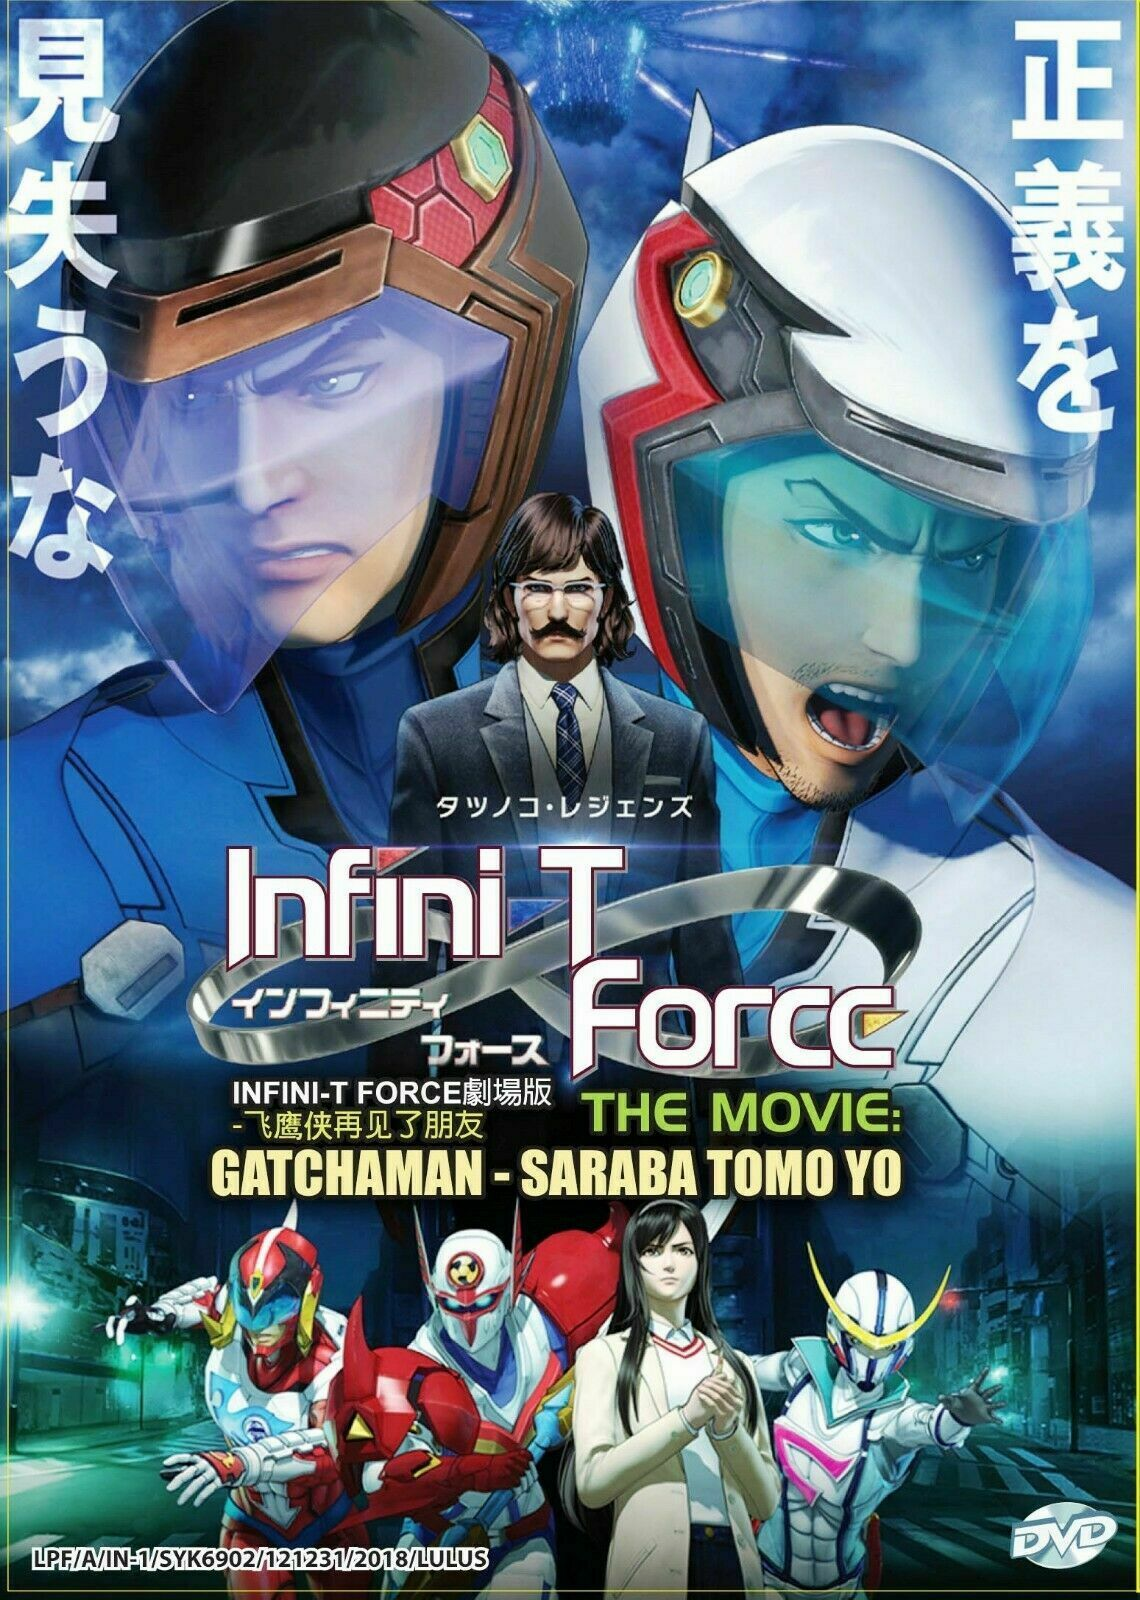 Infini-T Force The Movie: Gatchaman - Saraba Tomo Yo English Subtitle